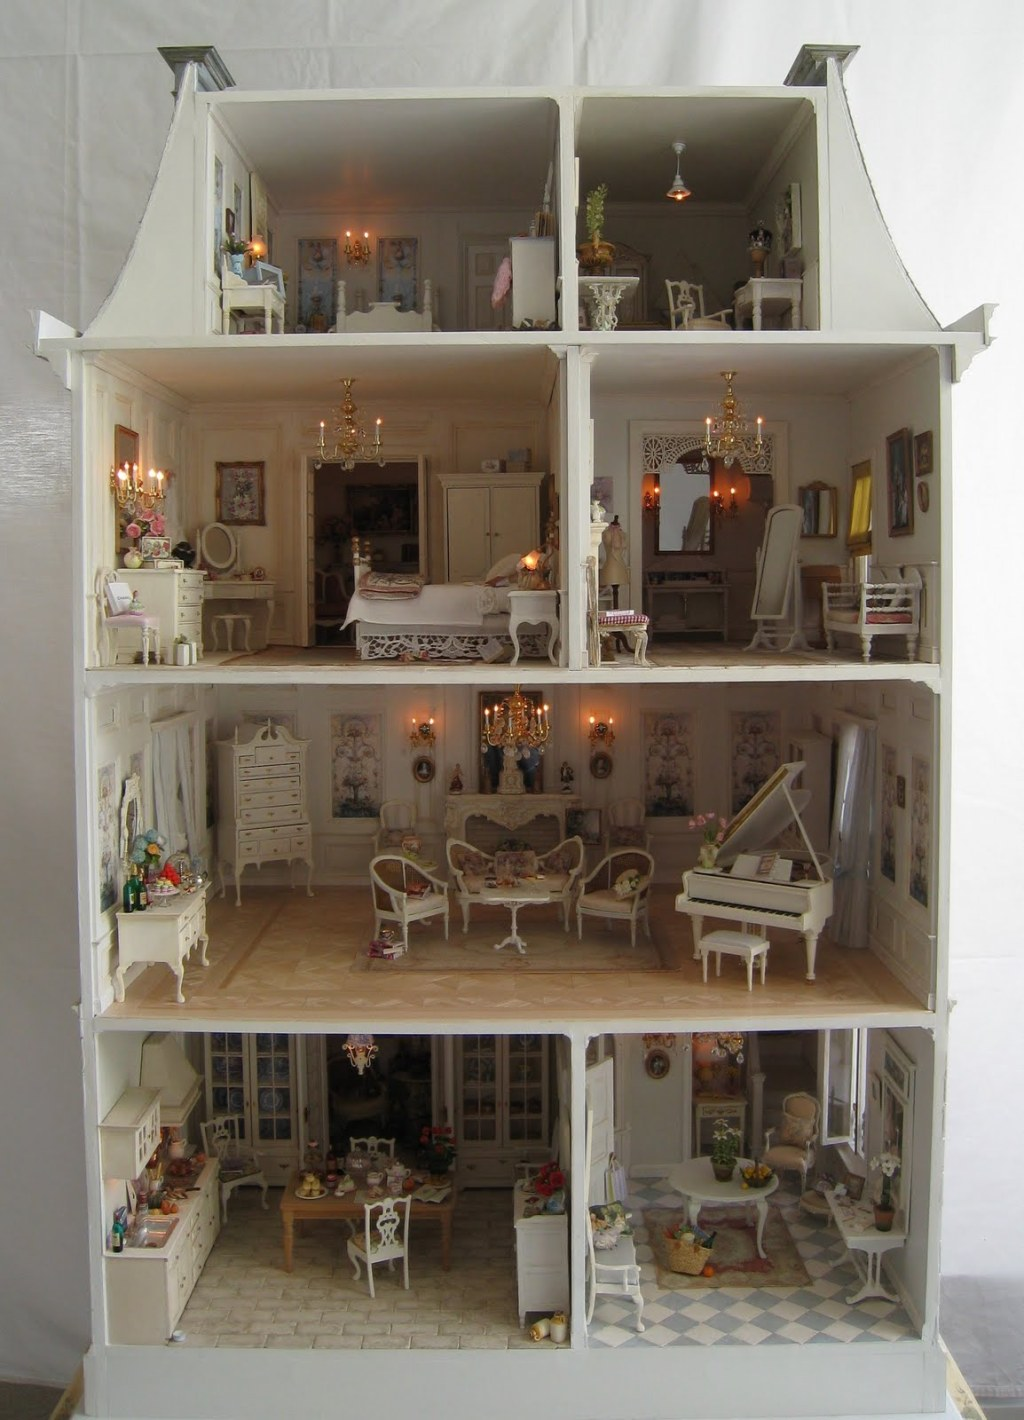 La Petite Maison A Dollhouse Five Years In The Making on Victorian Dollhouse Furniture Kits